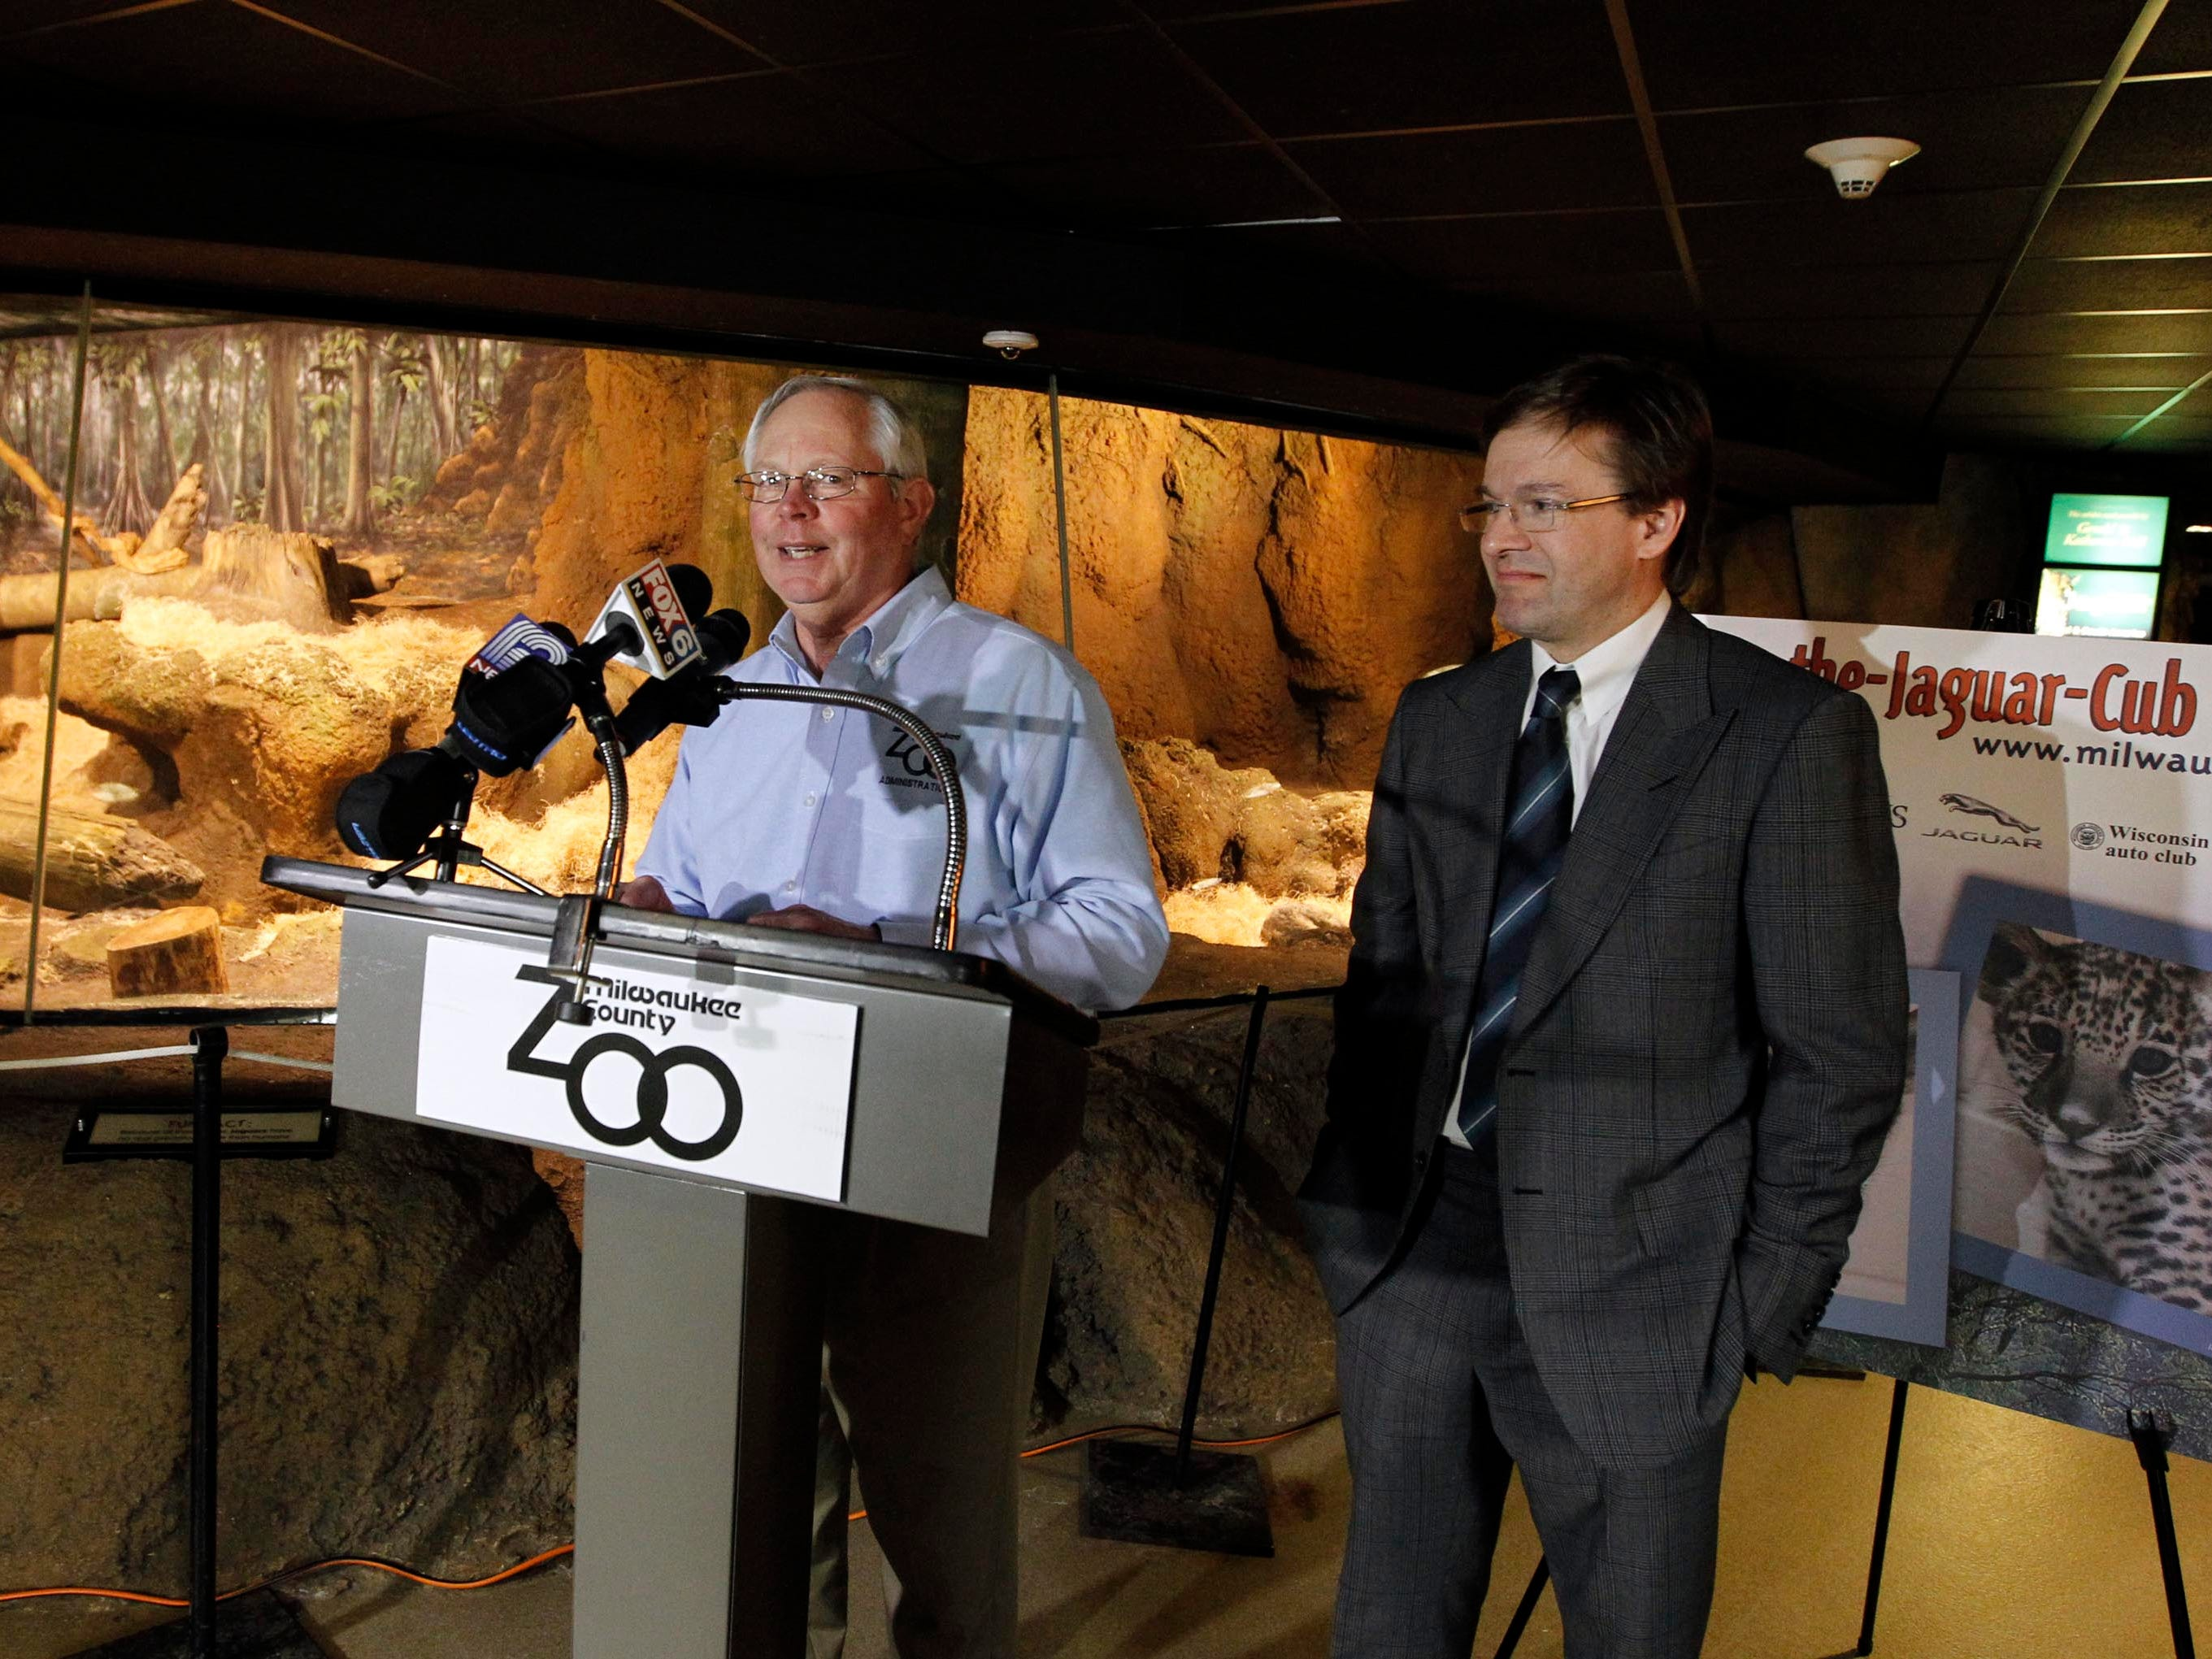 2013: Charles Wickenhauser, Director of the Milwaukee County Zoo and County Executive Chris Abele introduce jaguar cubs and their new public display space at the The Milwaukee County Zoo.